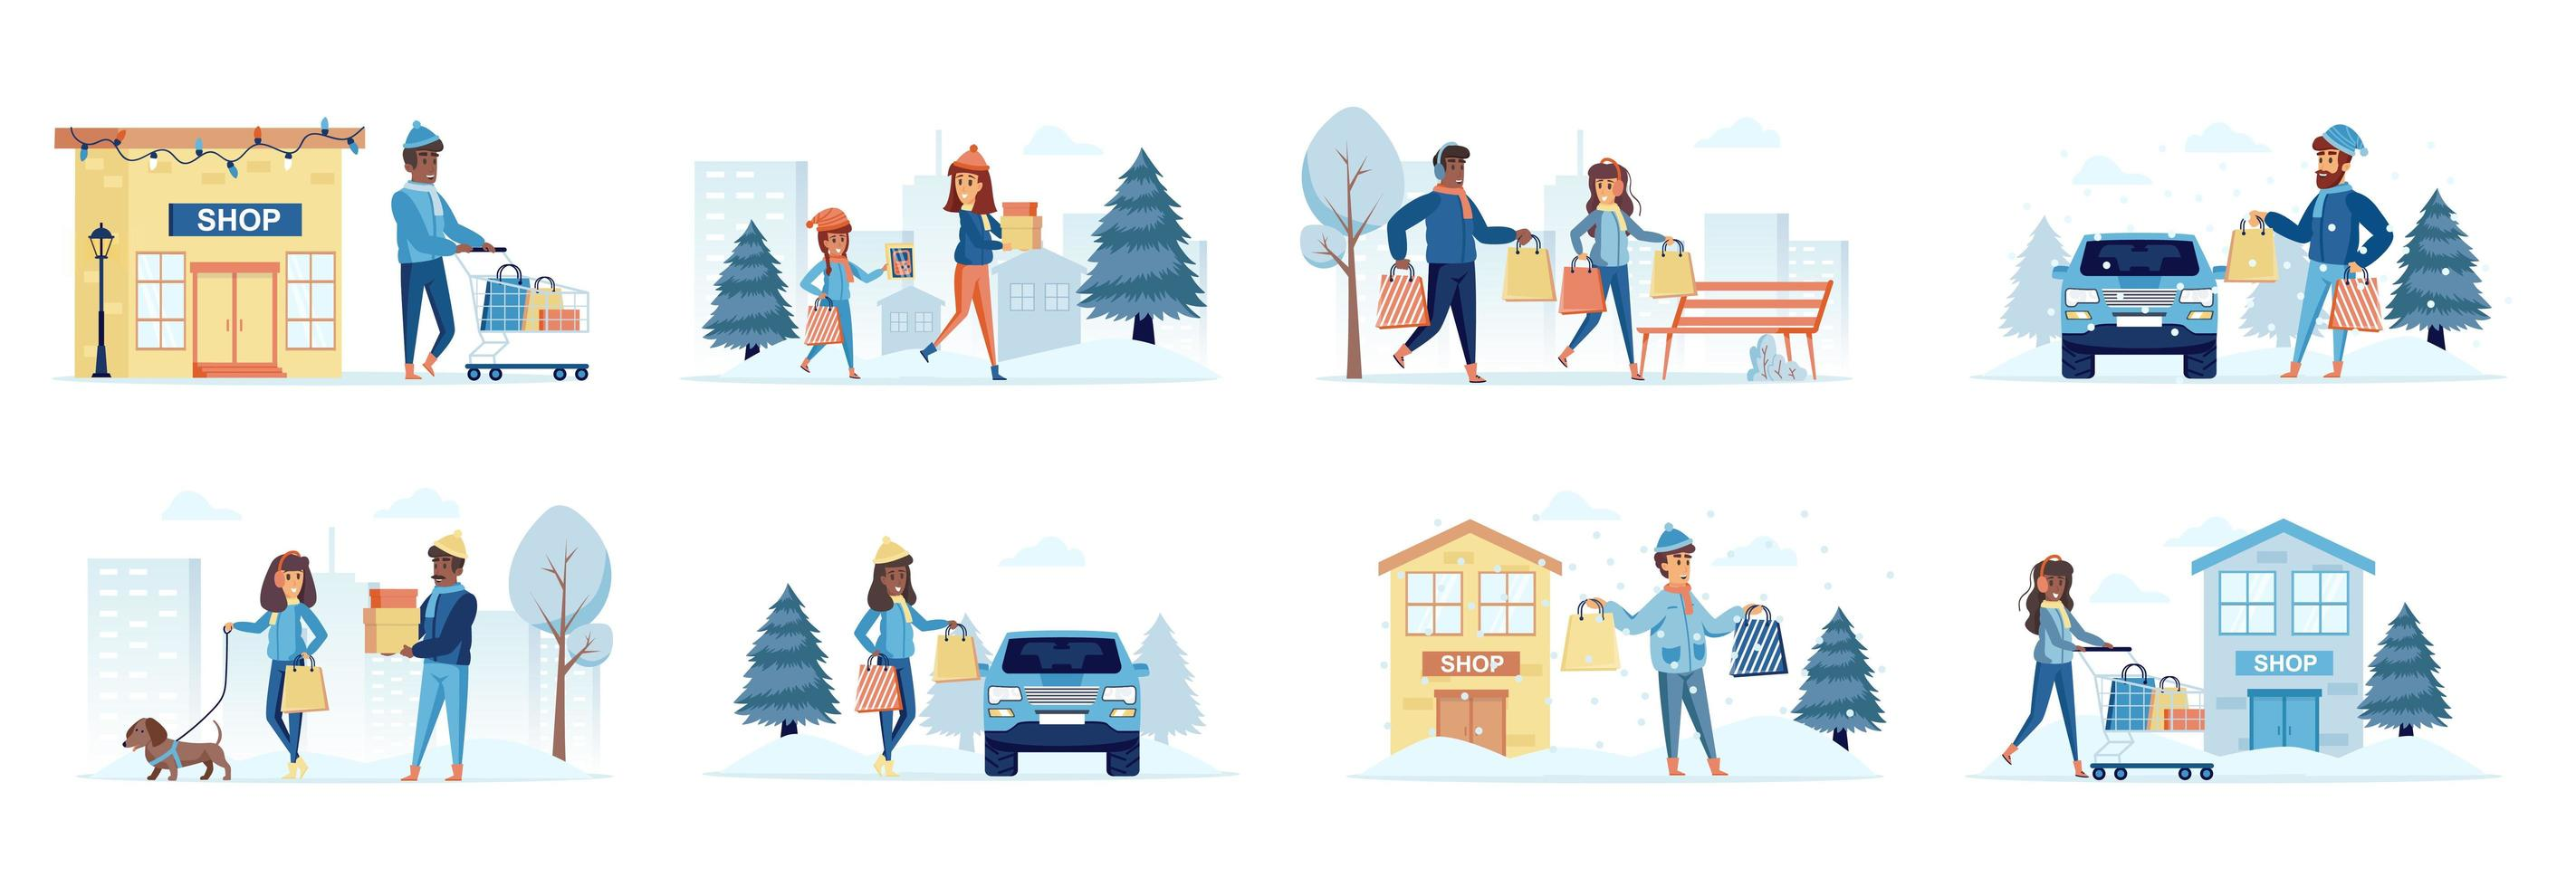 Winter season shopping bundle of scenes with people characters vector